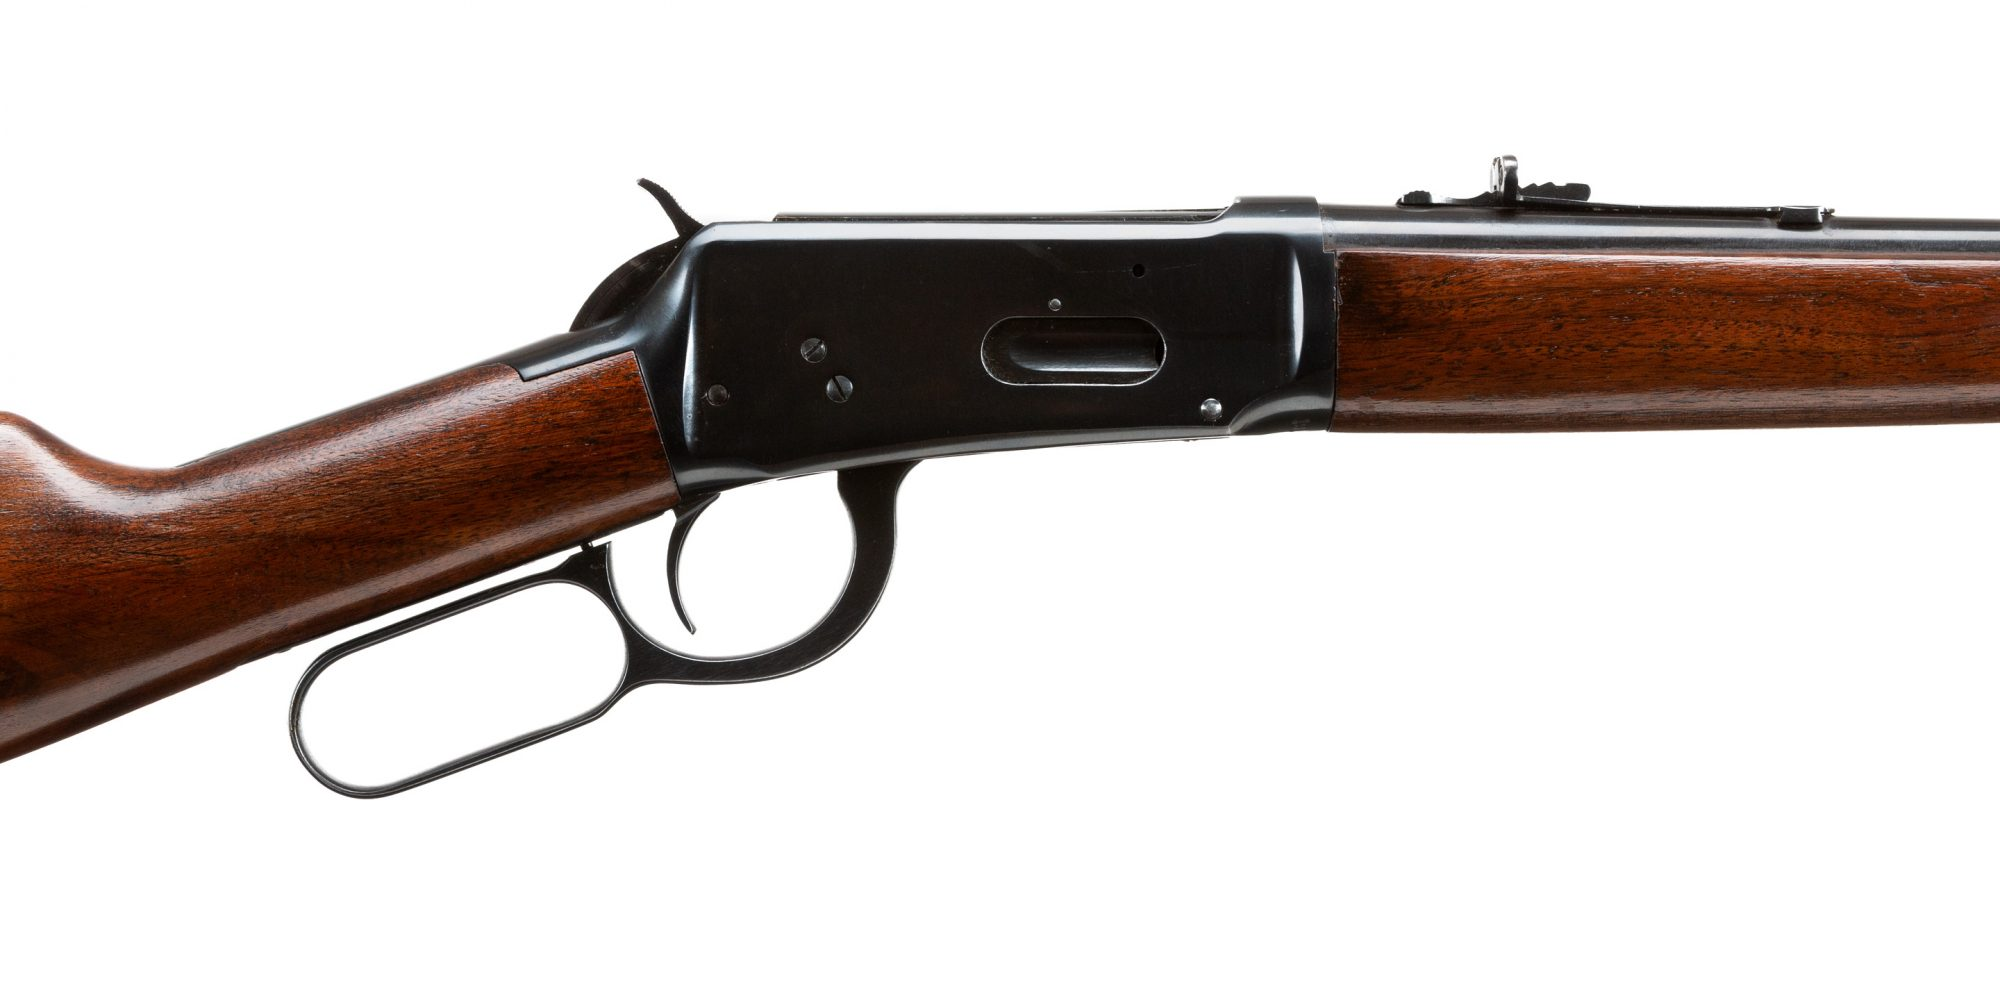 Photo of used Winchester Model 1894, for sale through Turnbull Restoration